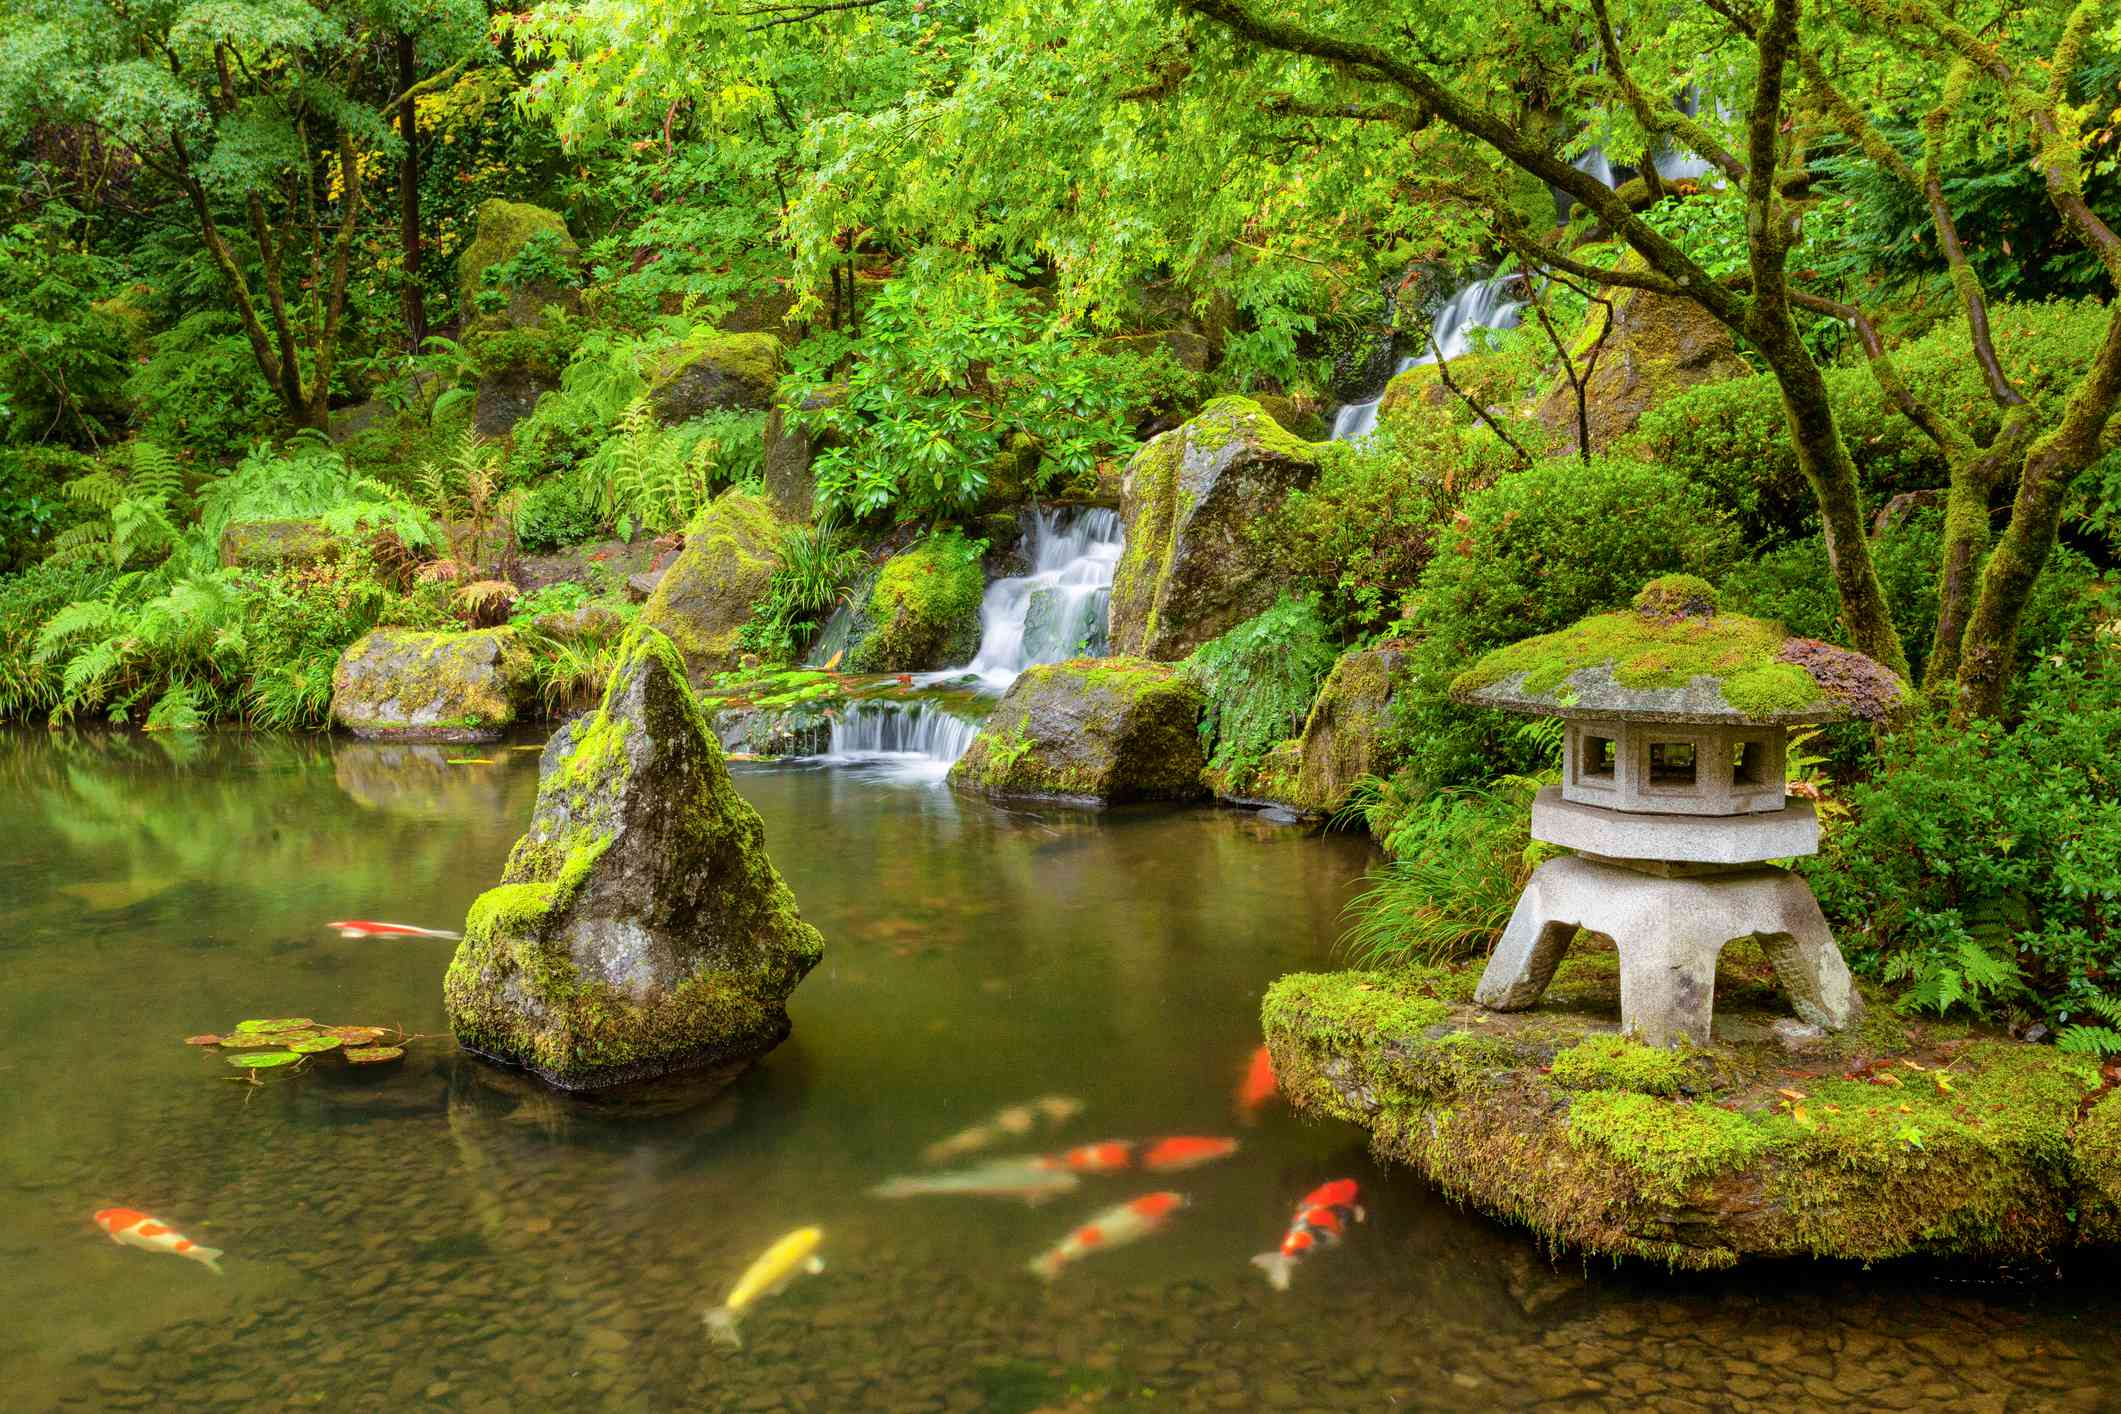 A green koi pond with waterfalls, boulders and sculptures.